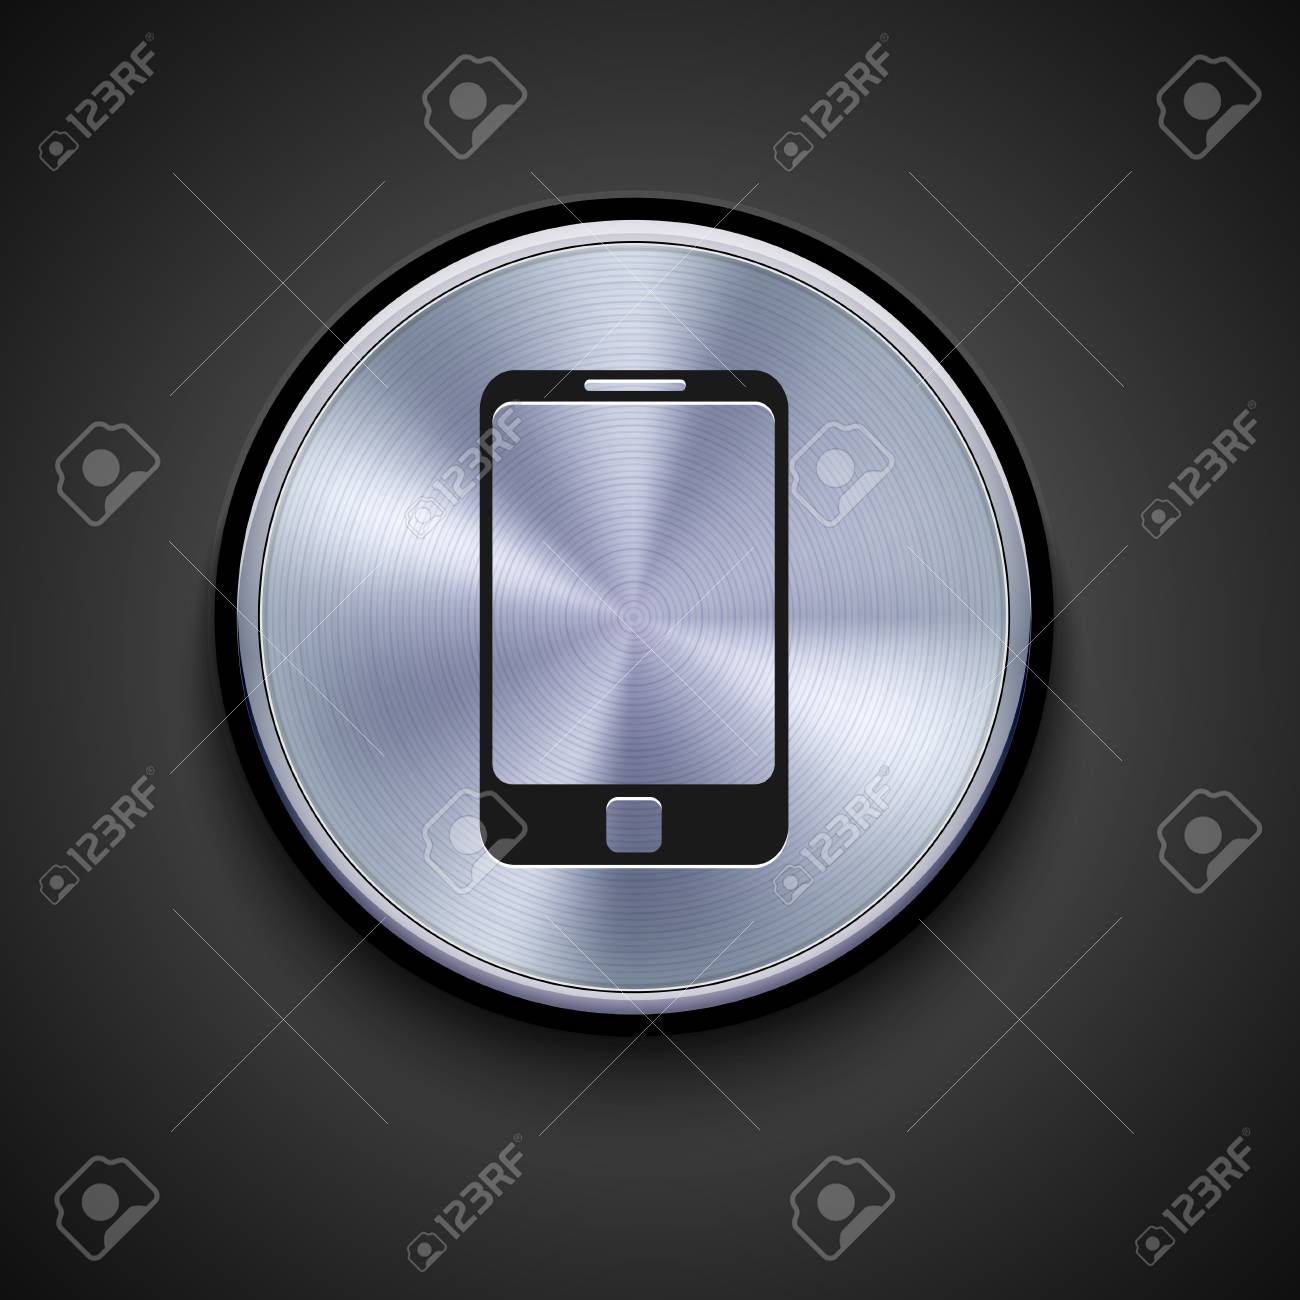 vector metal icon on gray background. Eps10 Stock Vector - 17275505